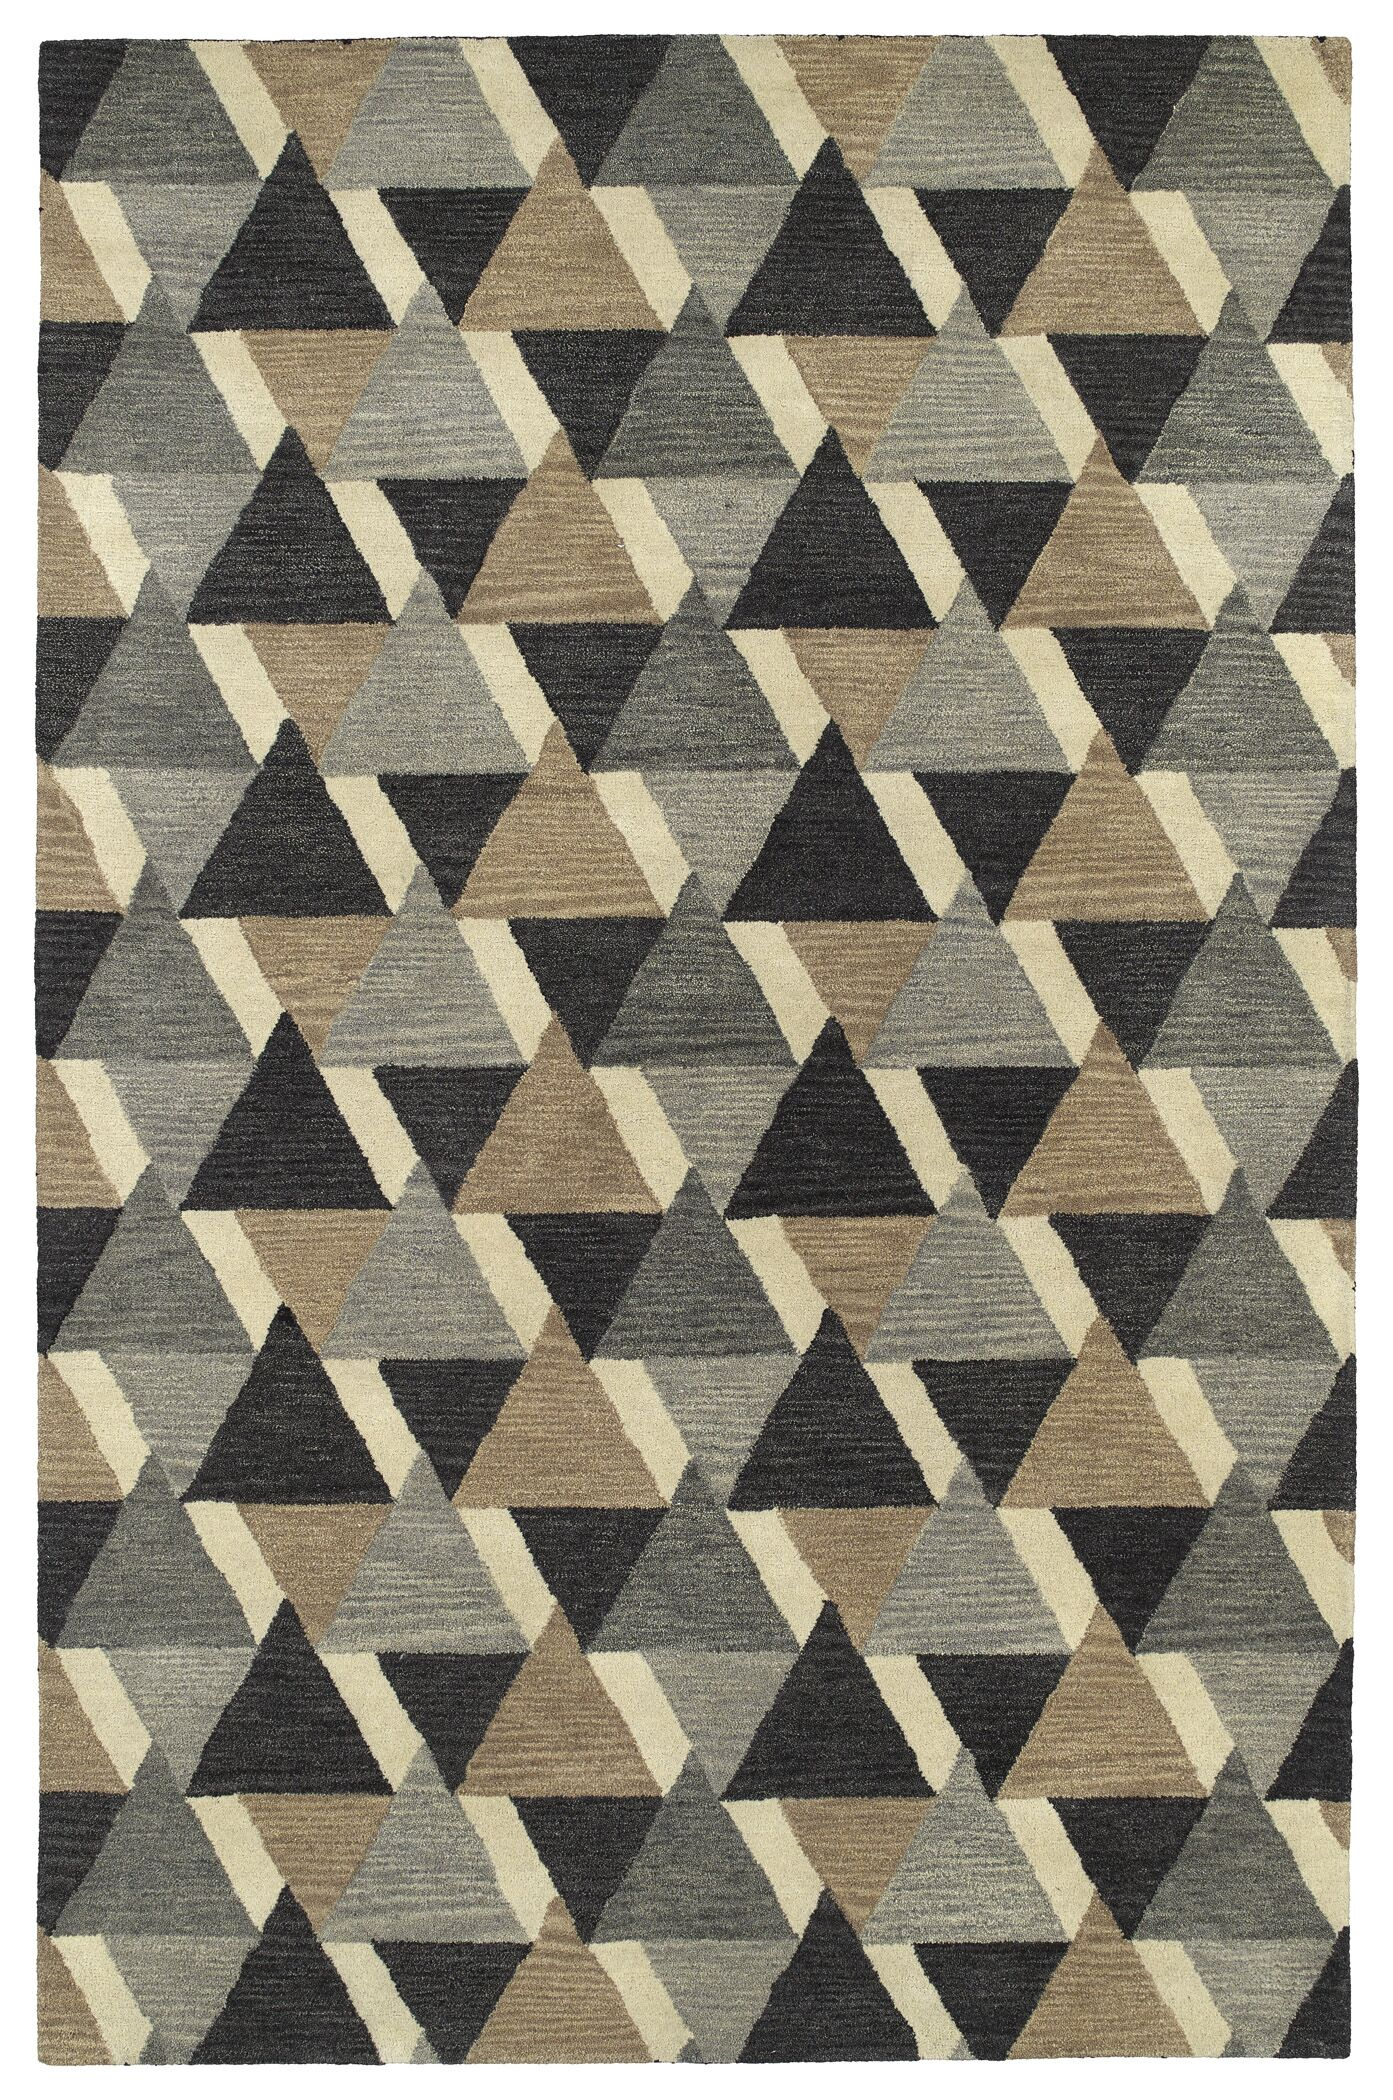 Dresden Hand Tufted Gray/Brown Area Rug Rug Size: Rectangle 5' x 7'9